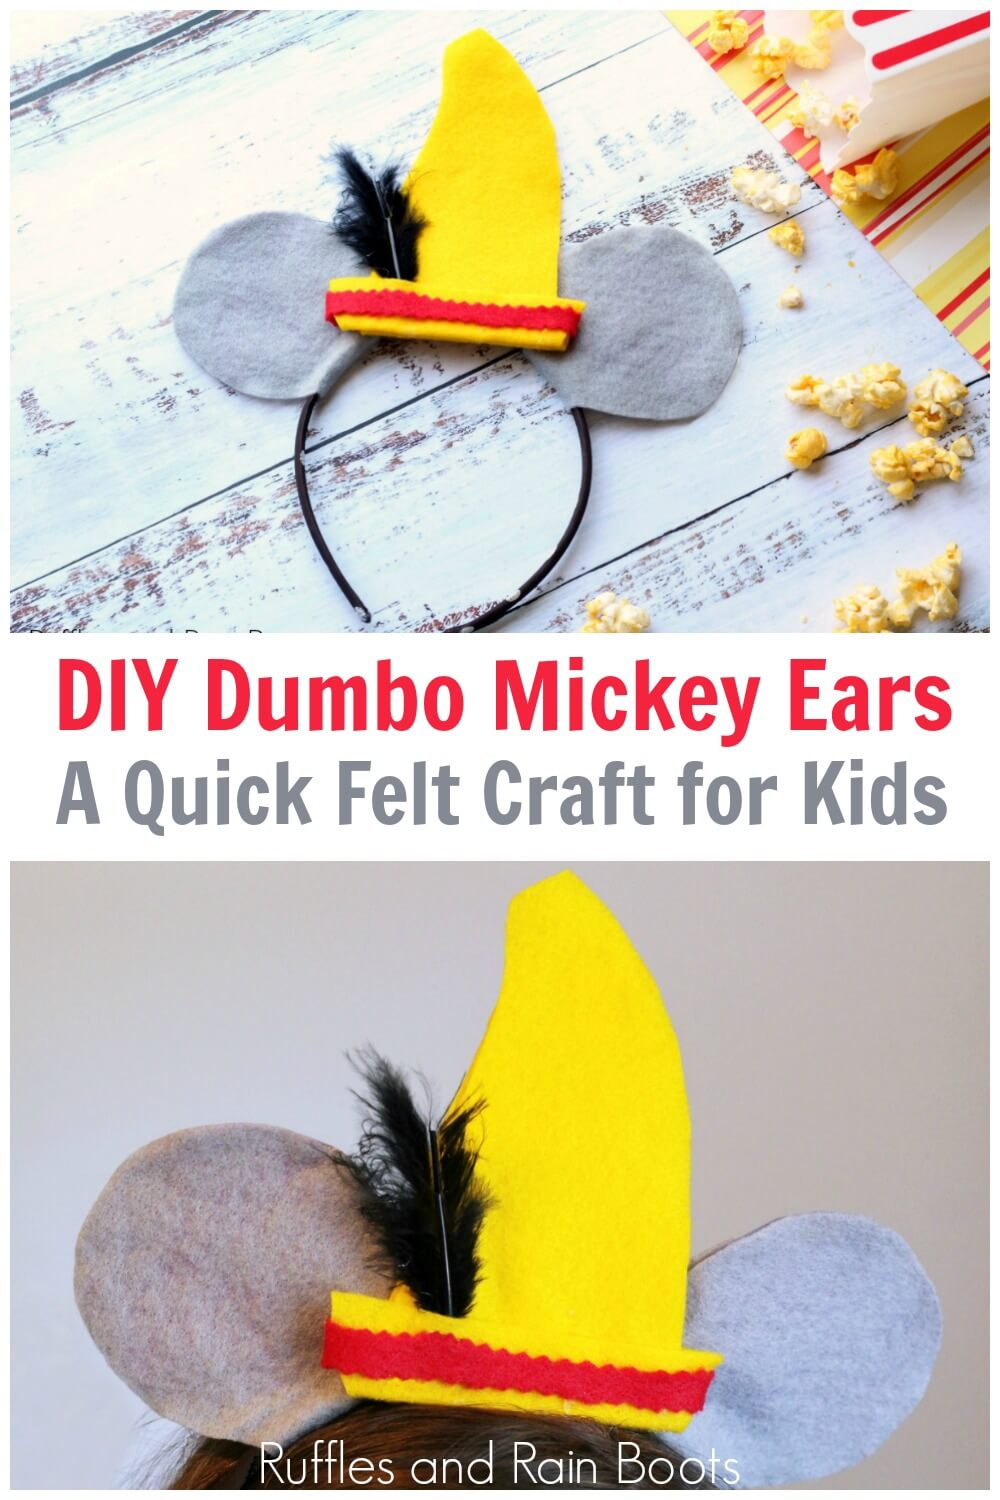 photo collage of Dumbo ears with text which reads DIY Dumbo Mickey ears a quick felt craft